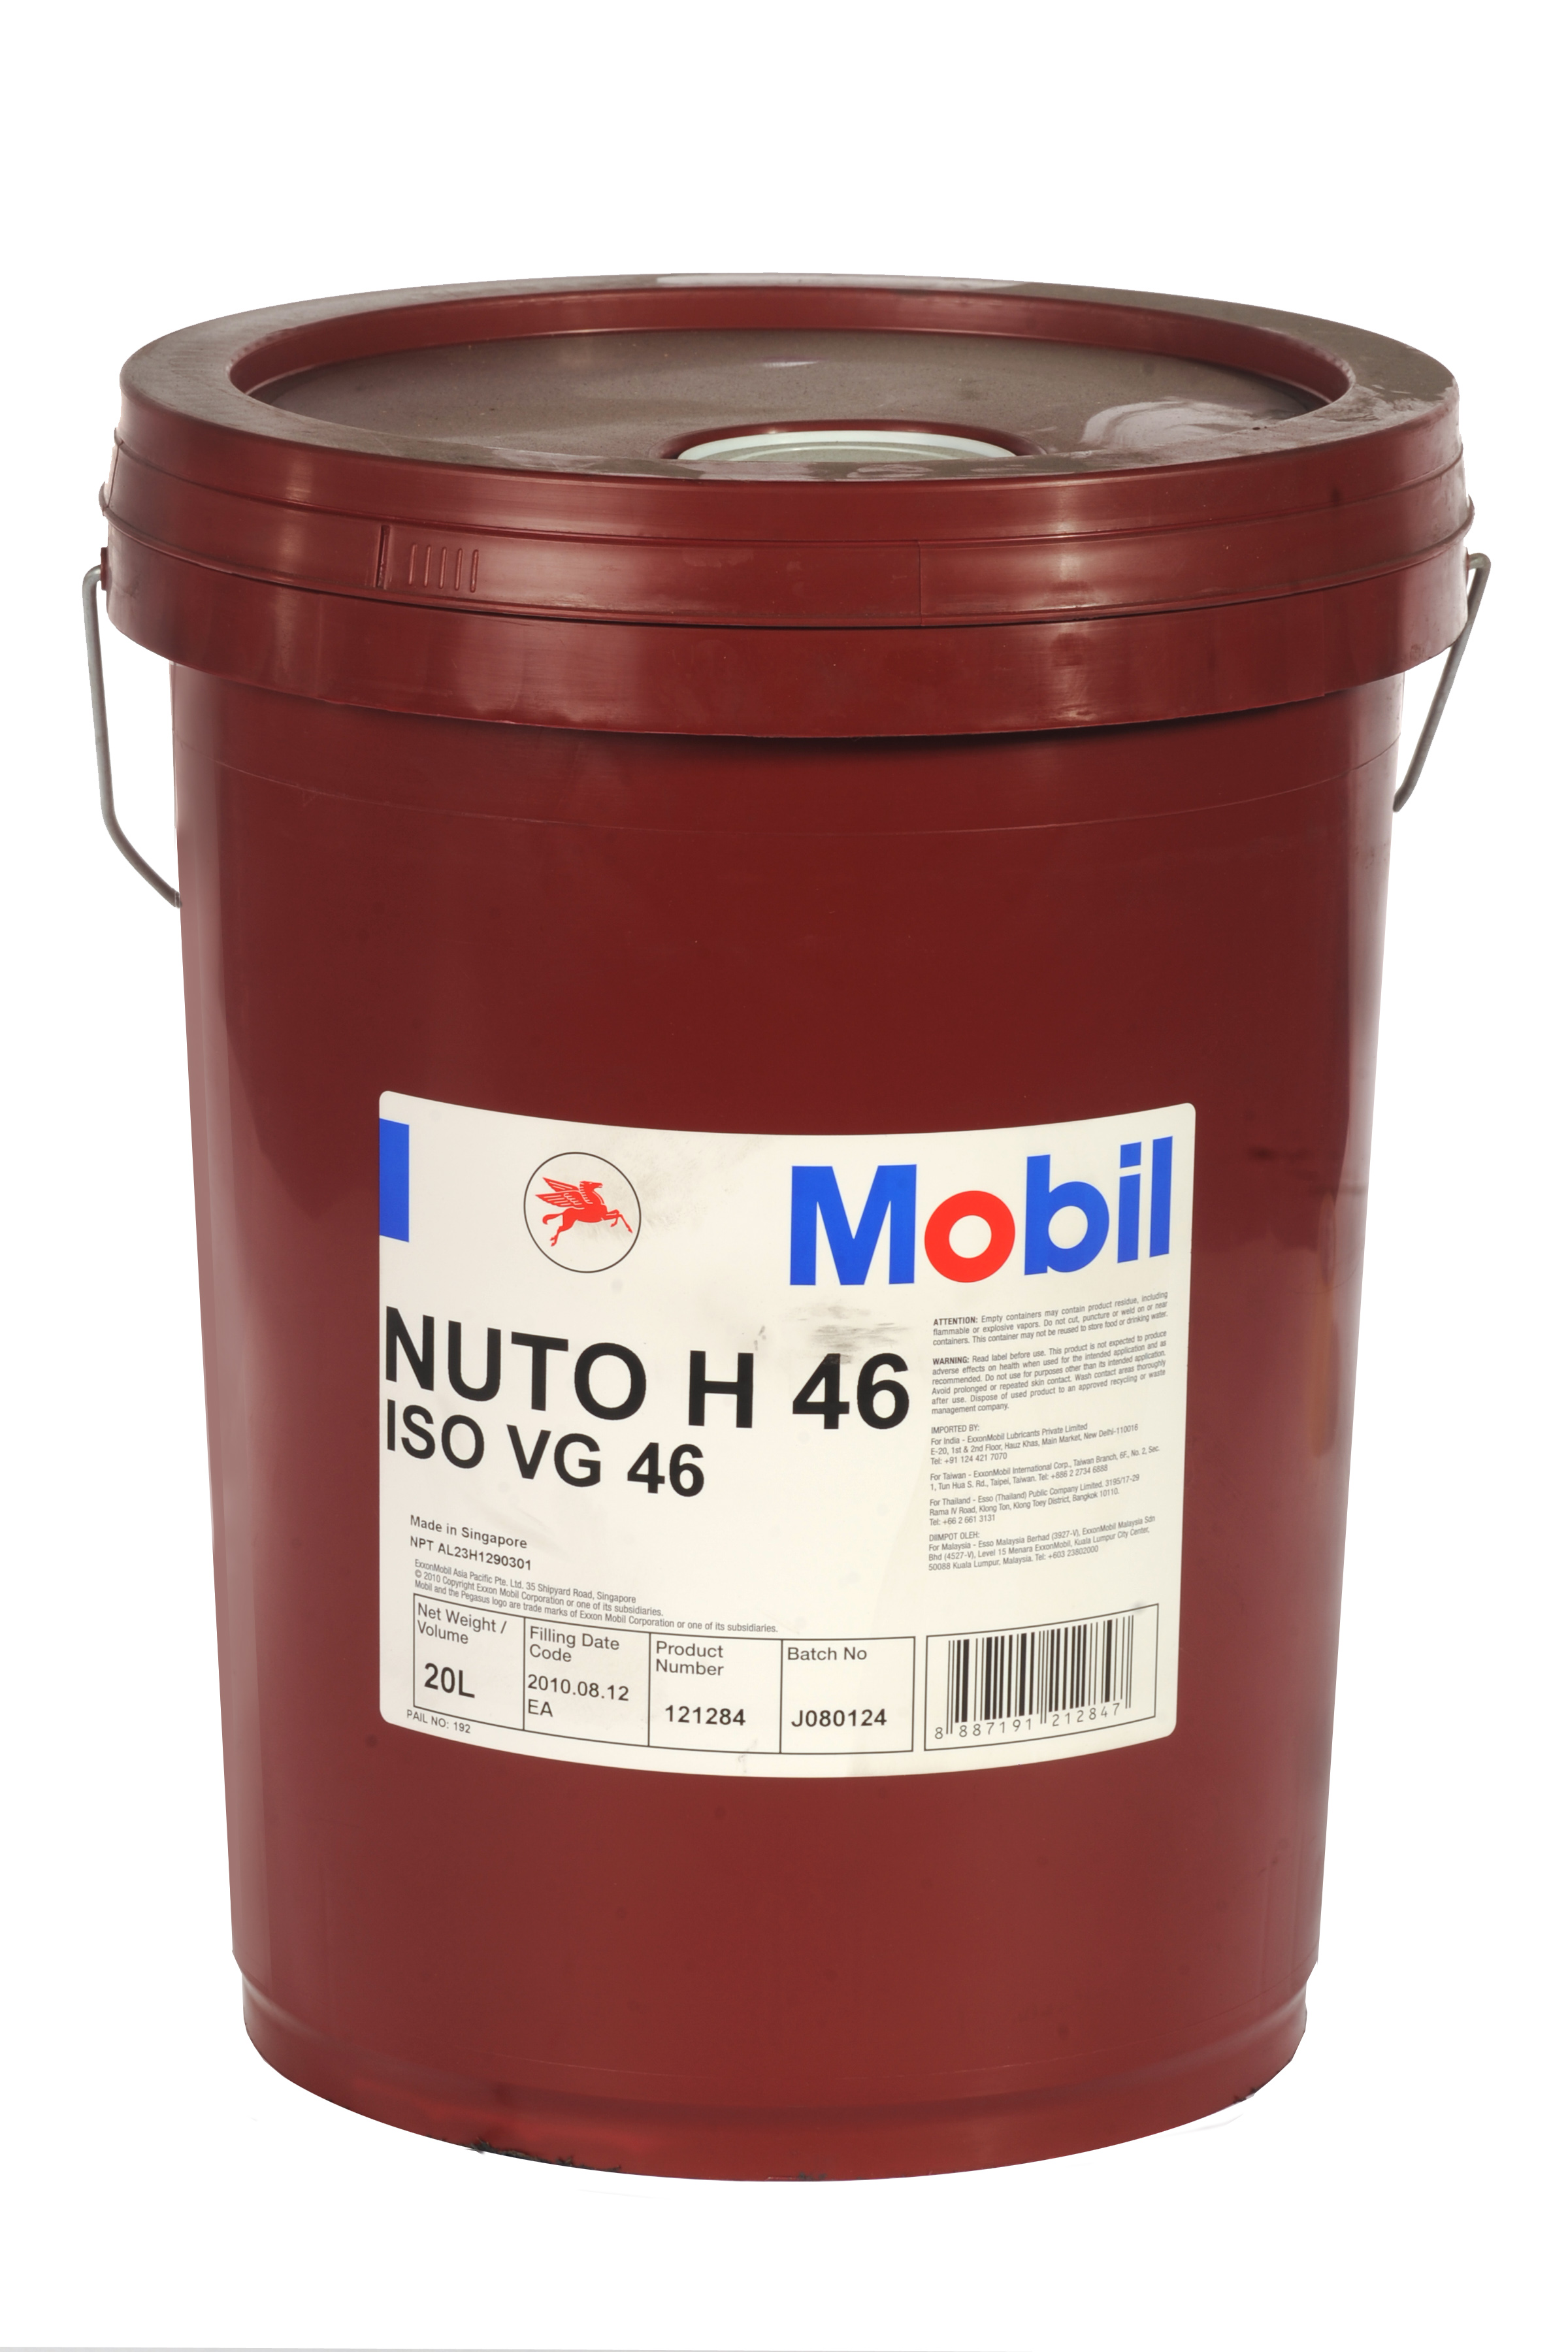 46 Email Oils Contact Usco Ltd Mail: NUTO H 46